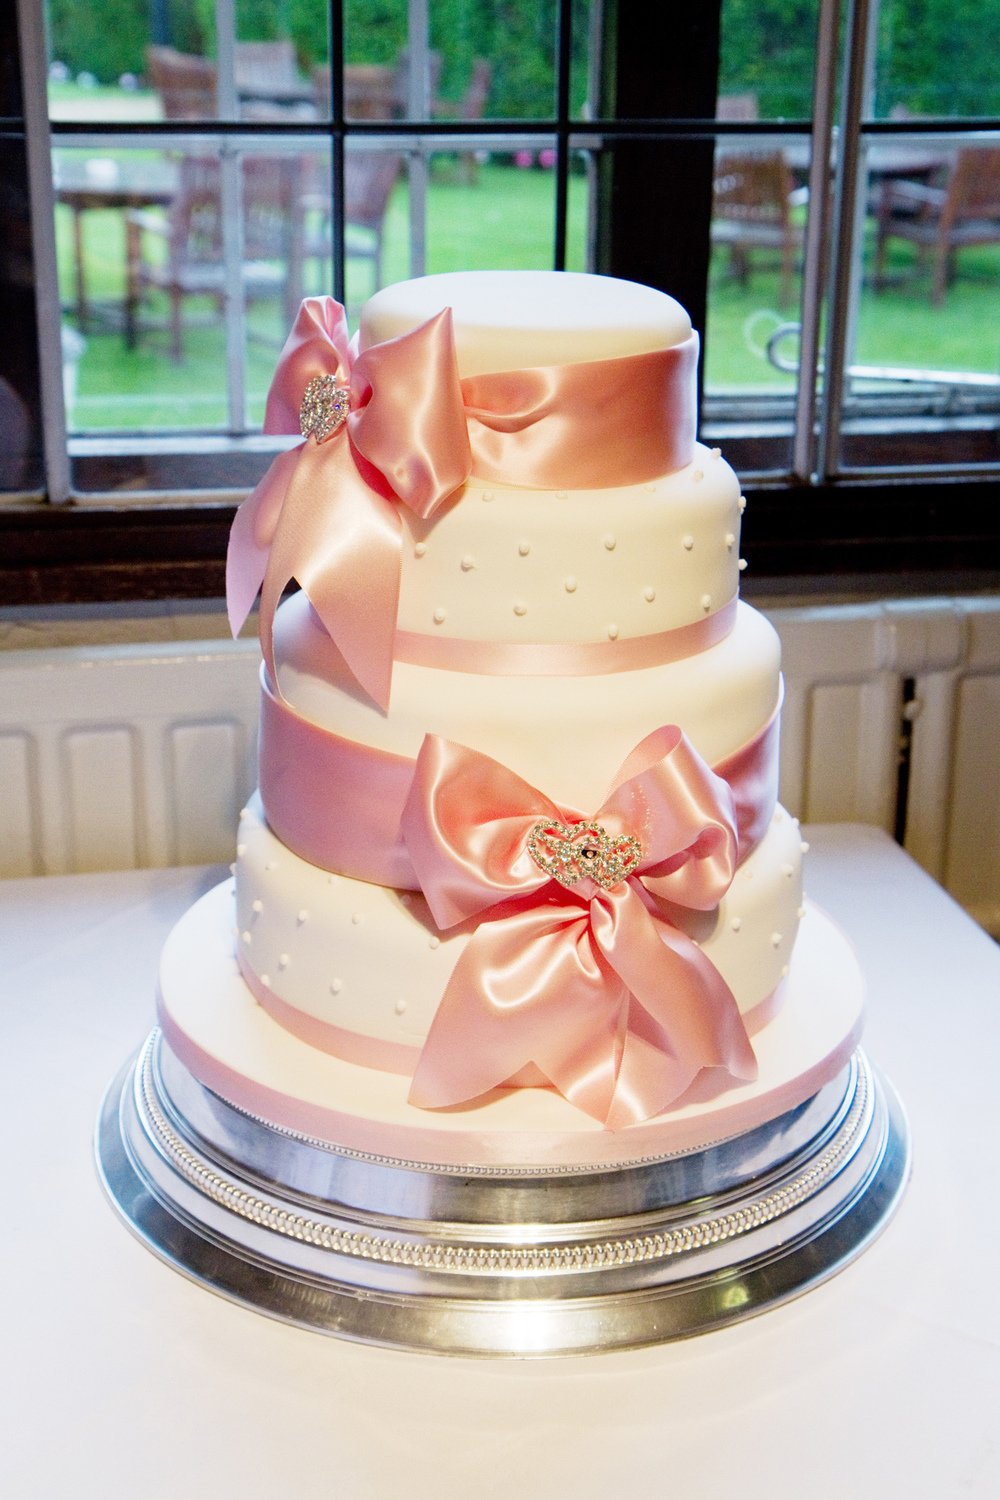 Four Tiered Wedding Cake, Pink Ribbon, Helen England Photography, Kent, U.K